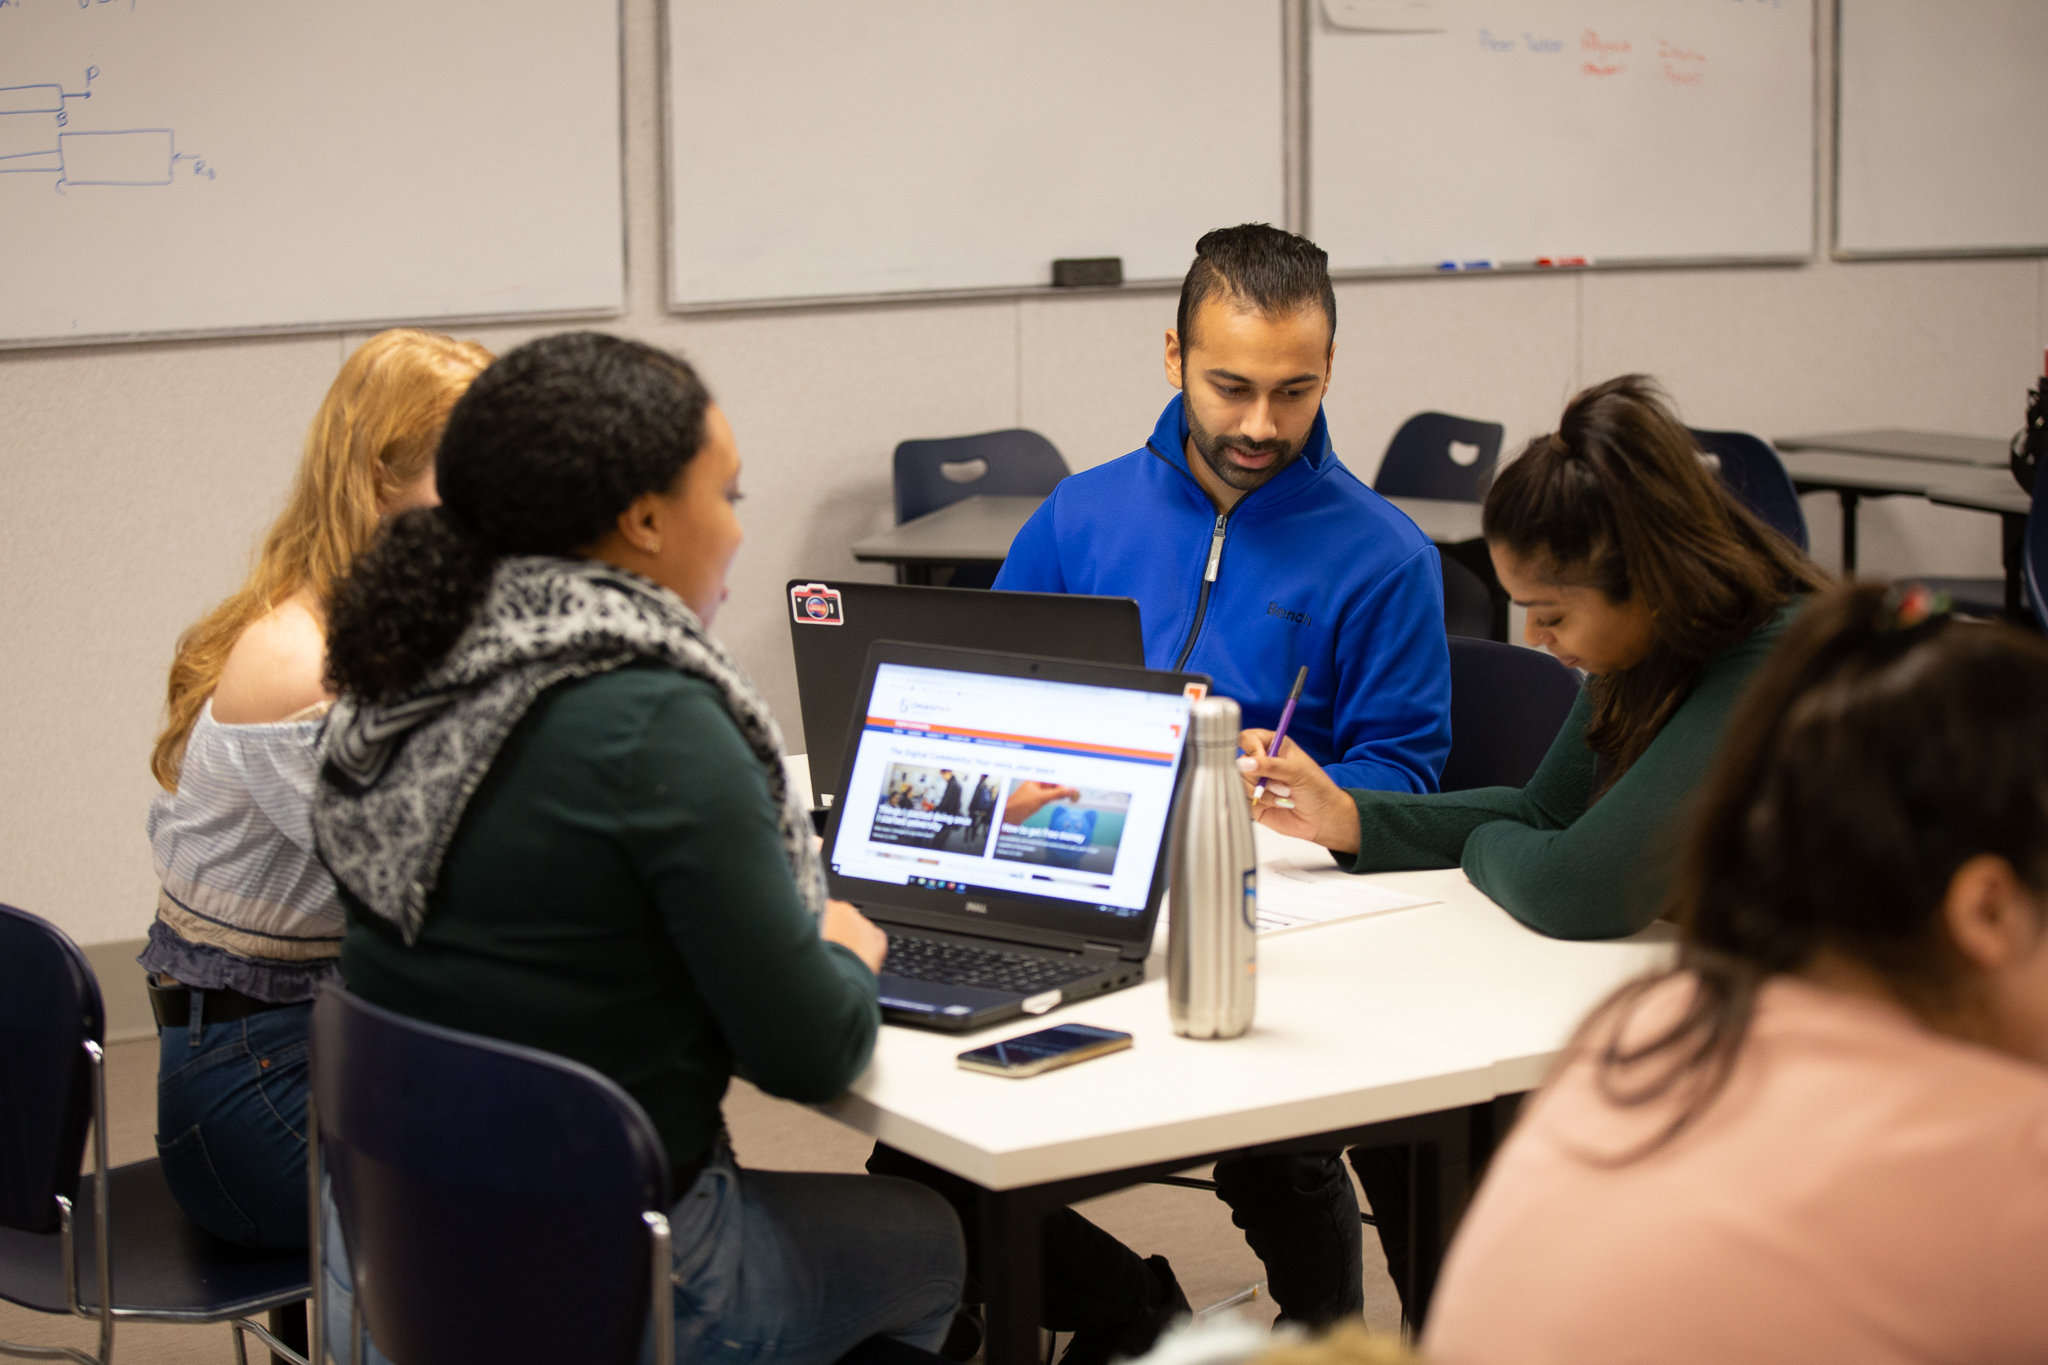 Four students sitting at a table working together.